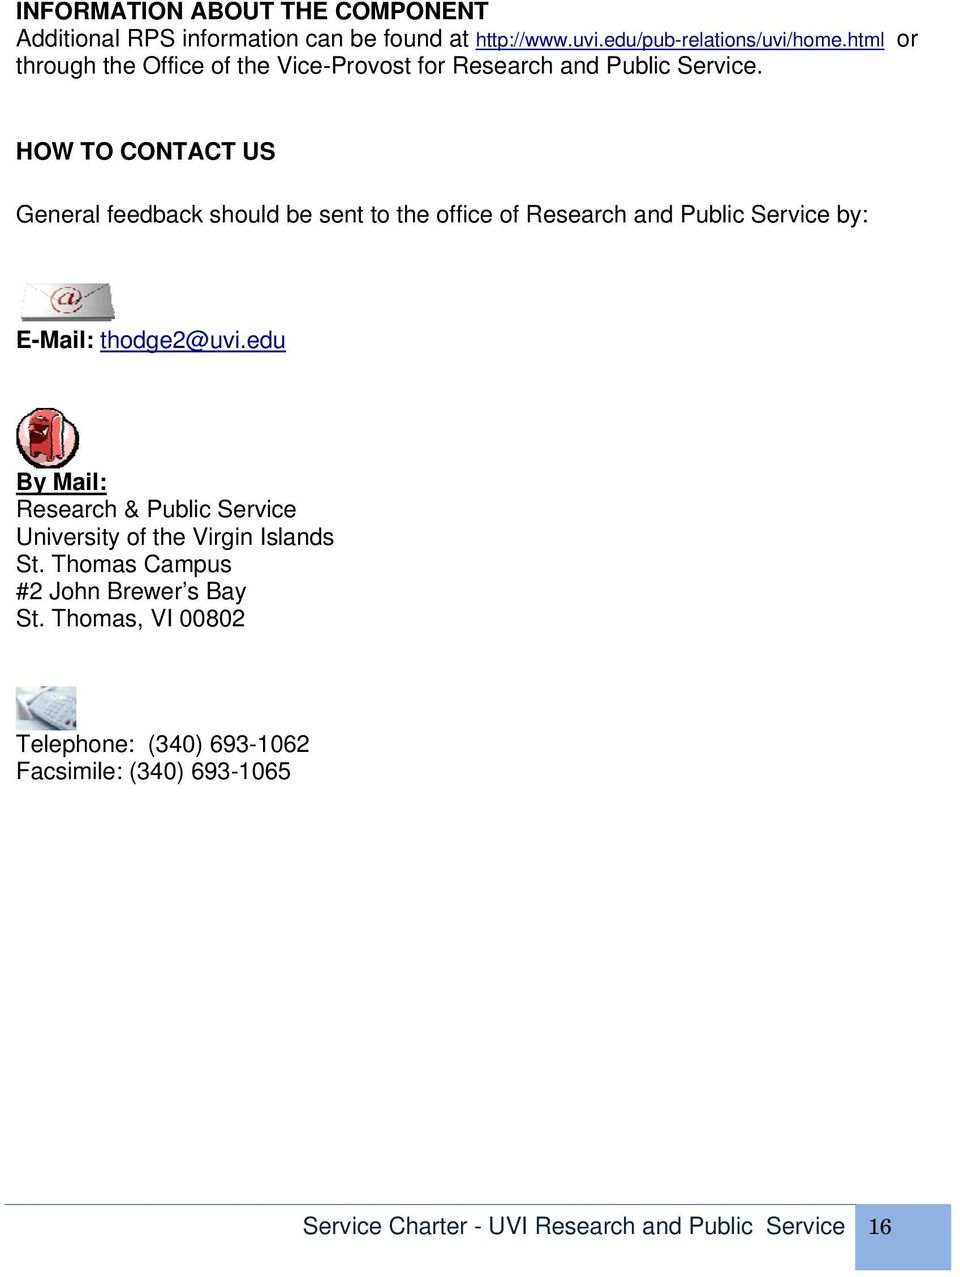 HOW TO CONTACT US General feedback should be sent to the office of Research and Public Service by: E-Mail: thodge2@uvi.